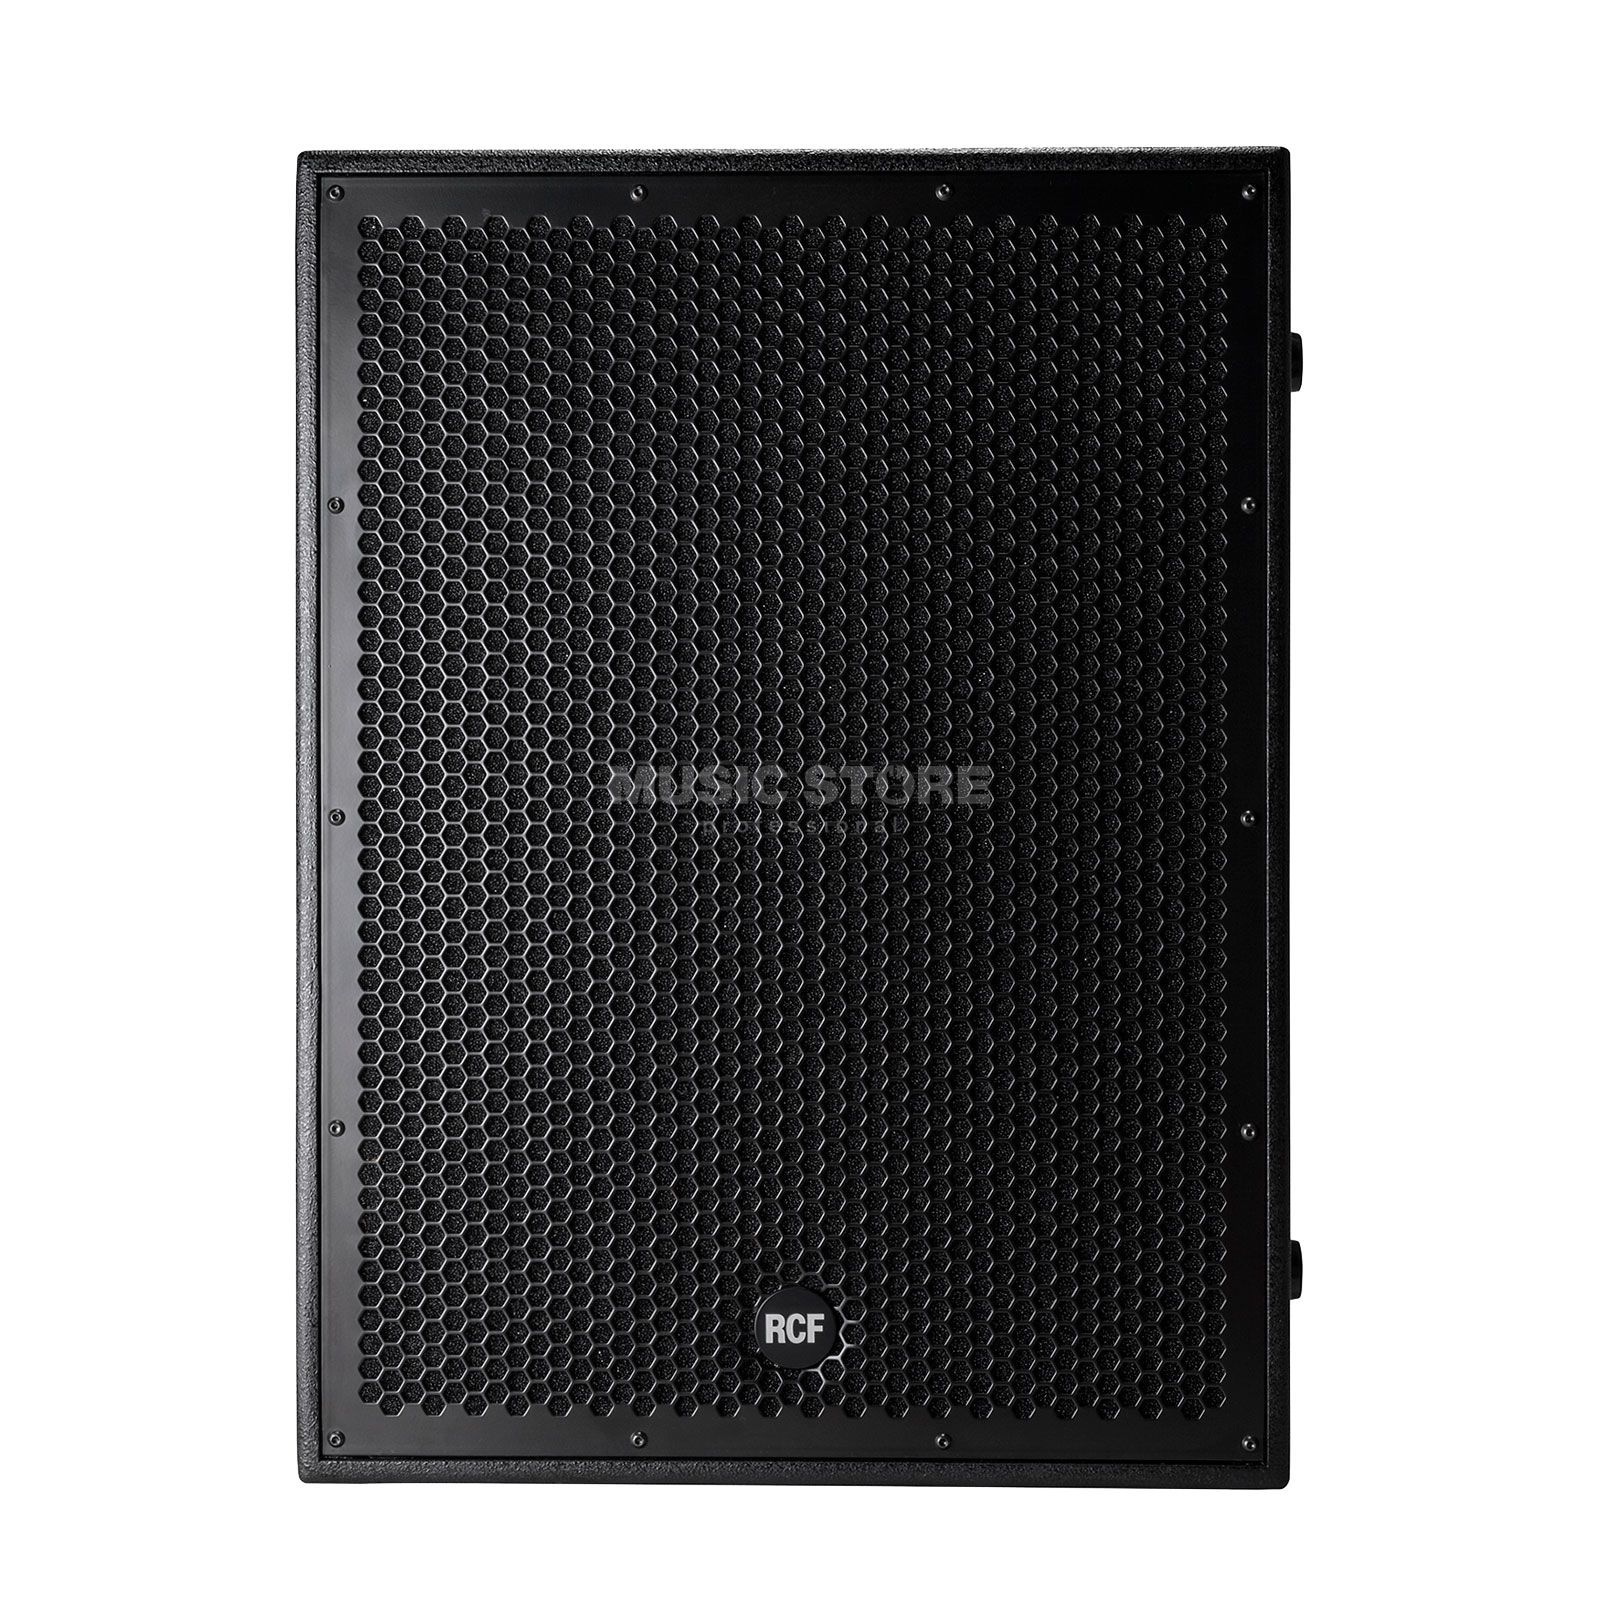 "RCF SUB 8005-AS 21"" Active Subwoofer Produktbillede"